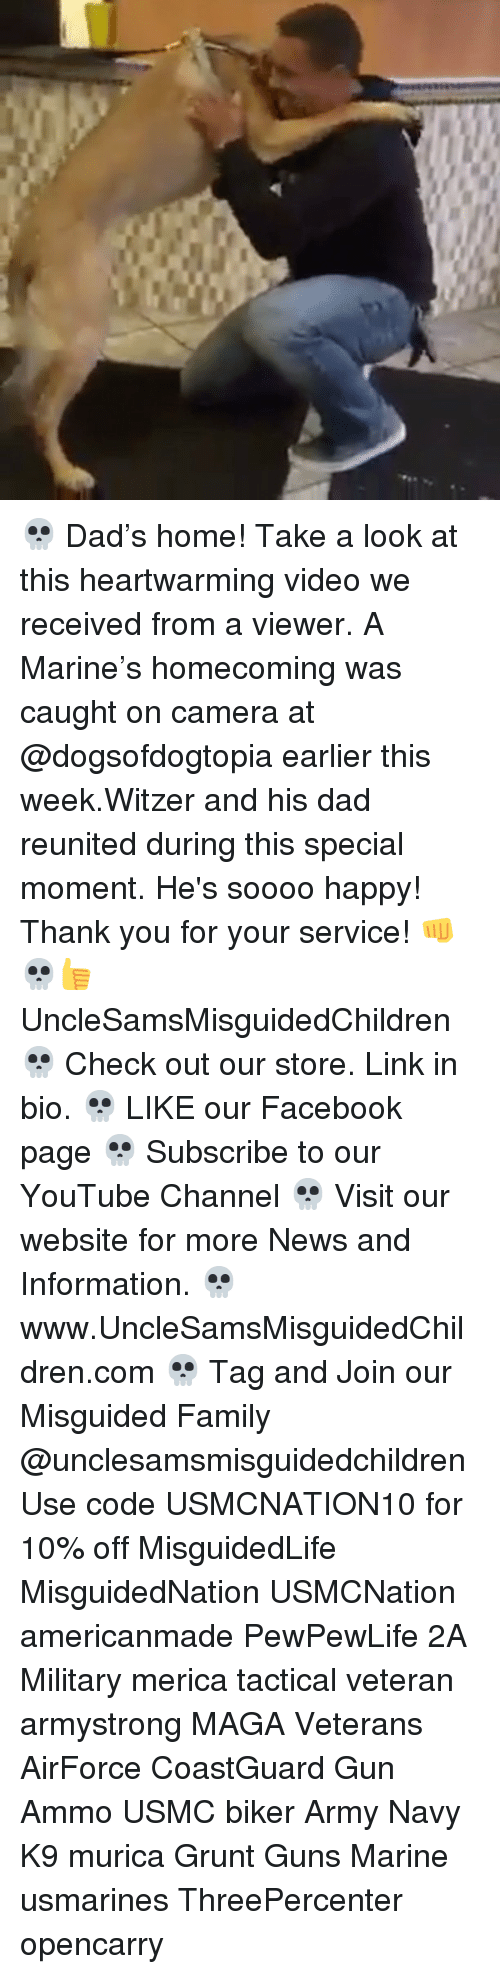 navi: 💀 Dad's home! Take a look at this heartwarming video we received from a viewer. A Marine's homecoming was caught on camera at @dogsofdogtopia earlier this week.Witzer and his dad reunited during this special moment. He's soooo happy! Thank you for your service! 👊💀👍 UncleSamsMisguidedChildren 💀 Check out our store. Link in bio. 💀 LIKE our Facebook page 💀 Subscribe to our YouTube Channel 💀 Visit our website for more News and Information. 💀 www.UncleSamsMisguidedChildren.com 💀 Tag and Join our Misguided Family @unclesamsmisguidedchildren Use code USMCNATION10 for 10% off MisguidedLife MisguidedNation USMCNation americanmade PewPewLife 2A Military merica tactical veteran armystrong MAGA Veterans AirForce CoastGuard Gun Ammo USMC biker Army Navy K9 murica Grunt Guns Marine usmarines ThreePercenter opencarry